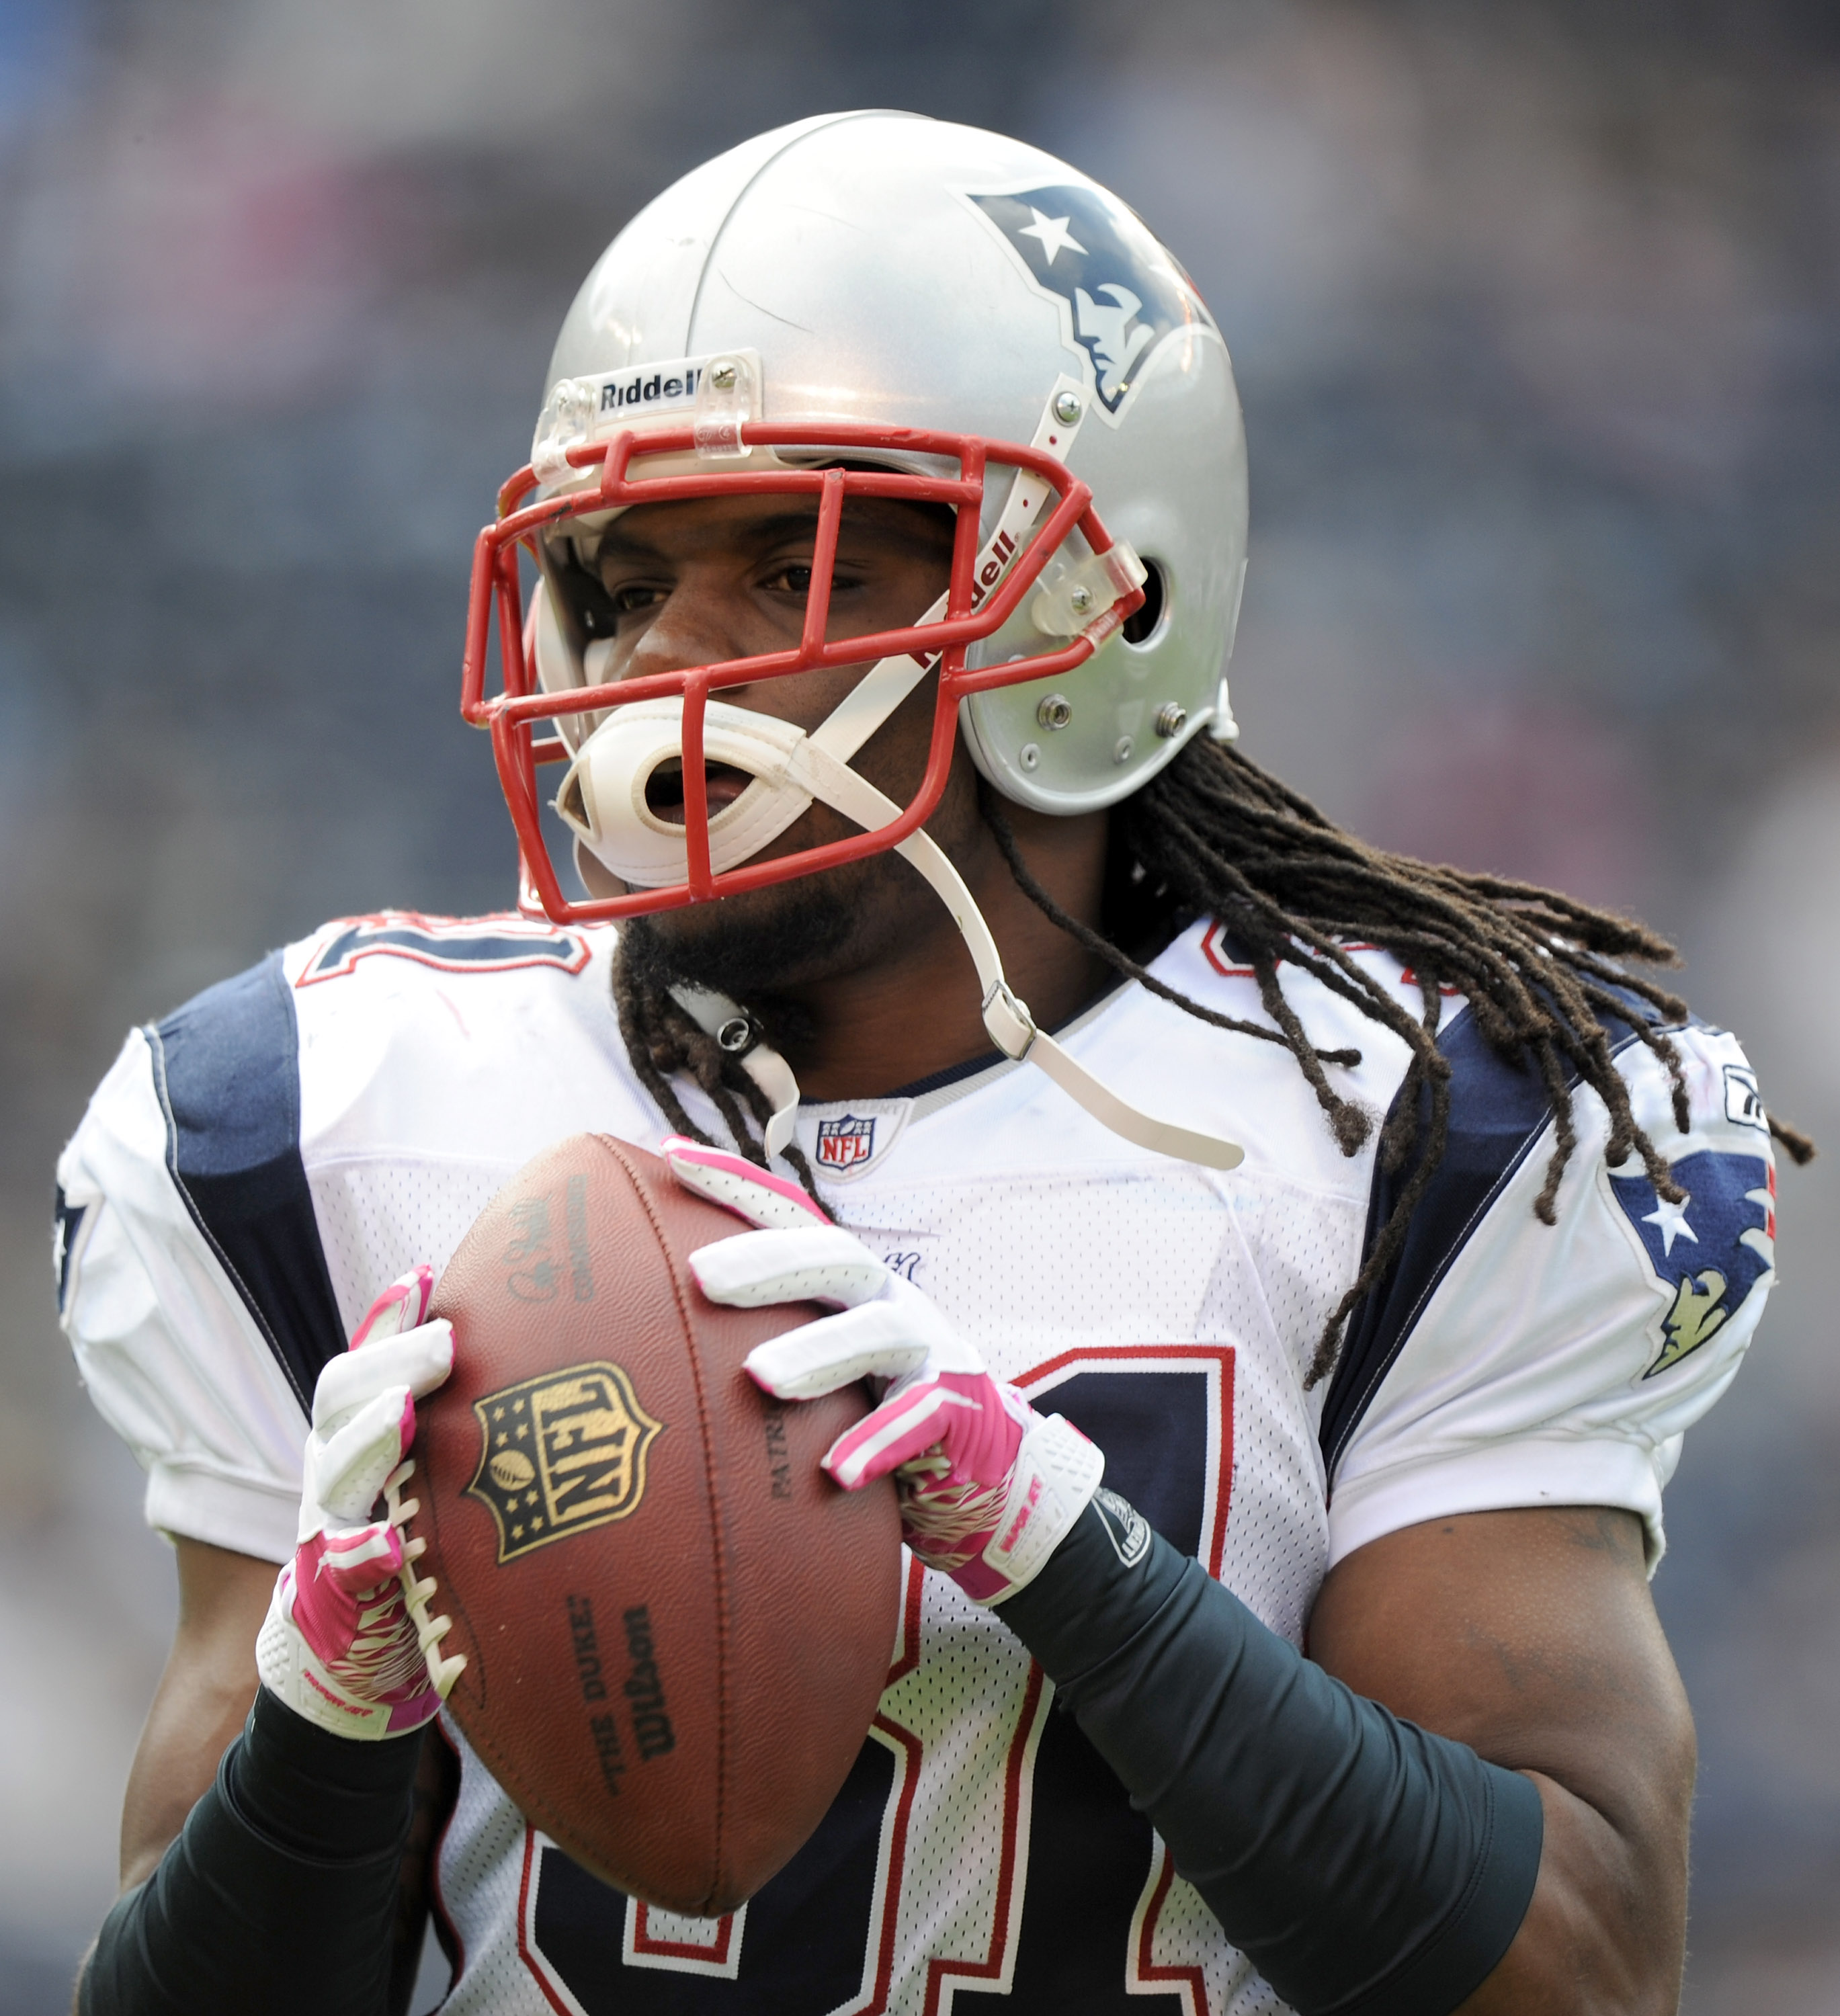 SAN DIEGO - OCTOBER 24:  Brandon Meriweather #31 of the New England Patriots warms up against the San Diego Chargers at Qualcomm Stadium on October 24, 2010 in San Diego, California.  (Photo by Harry How/Getty Images)